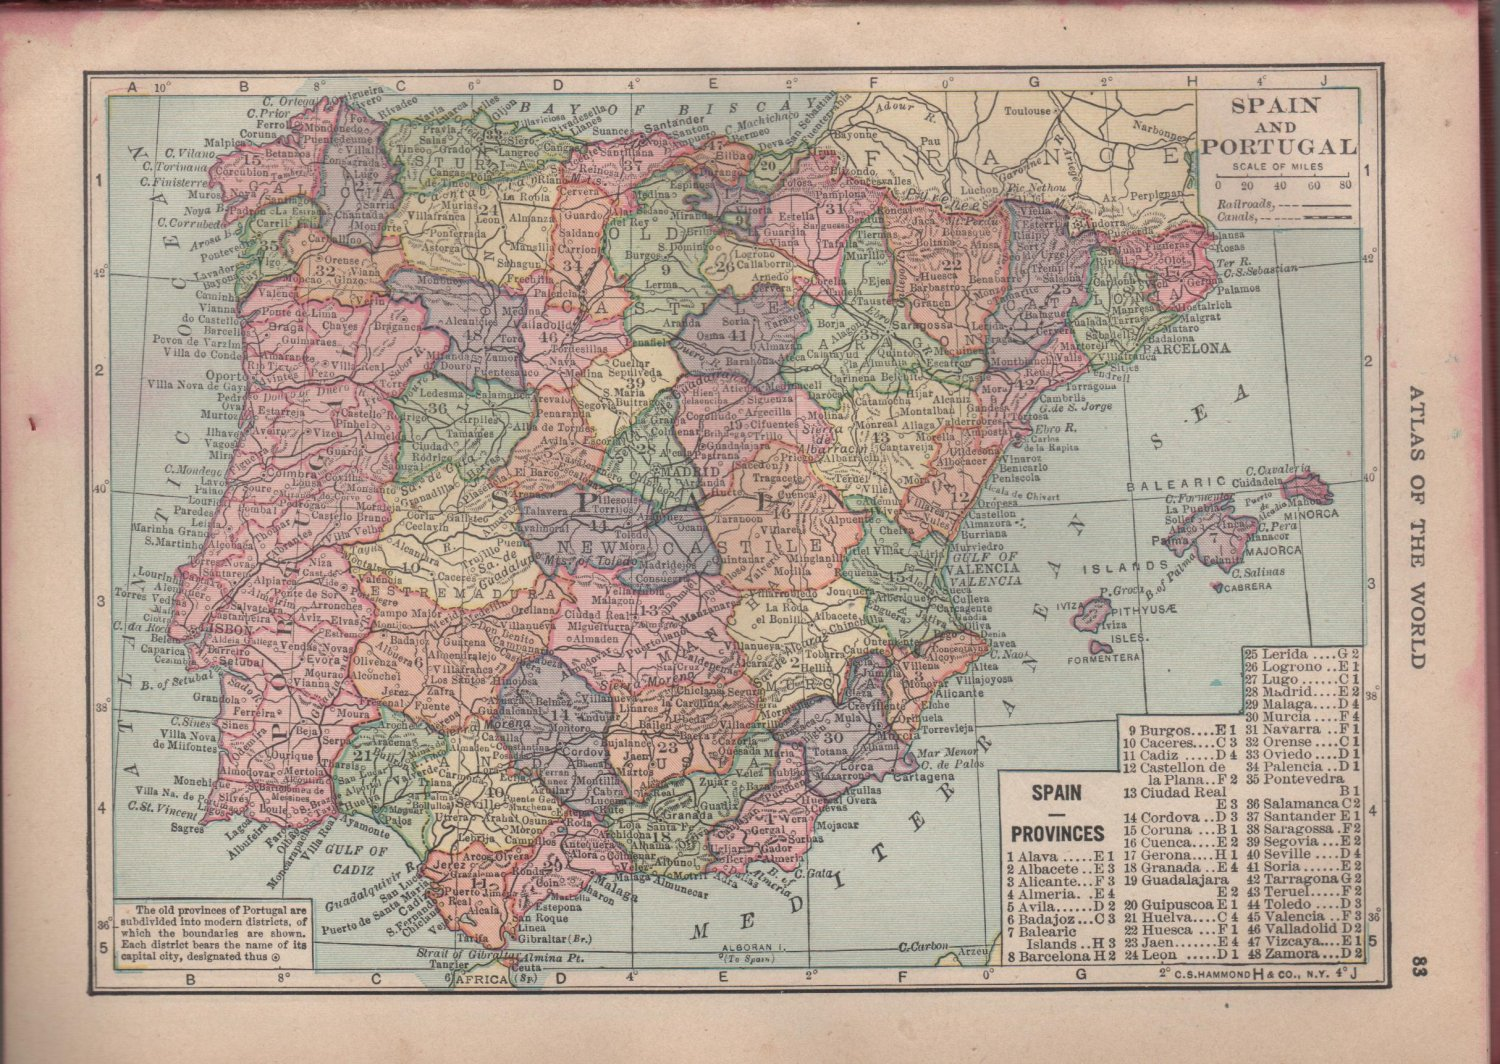 Full Map Of Spain.Map Of Spain And Portugal Full Color C S Hammond Co Atlas C 1910